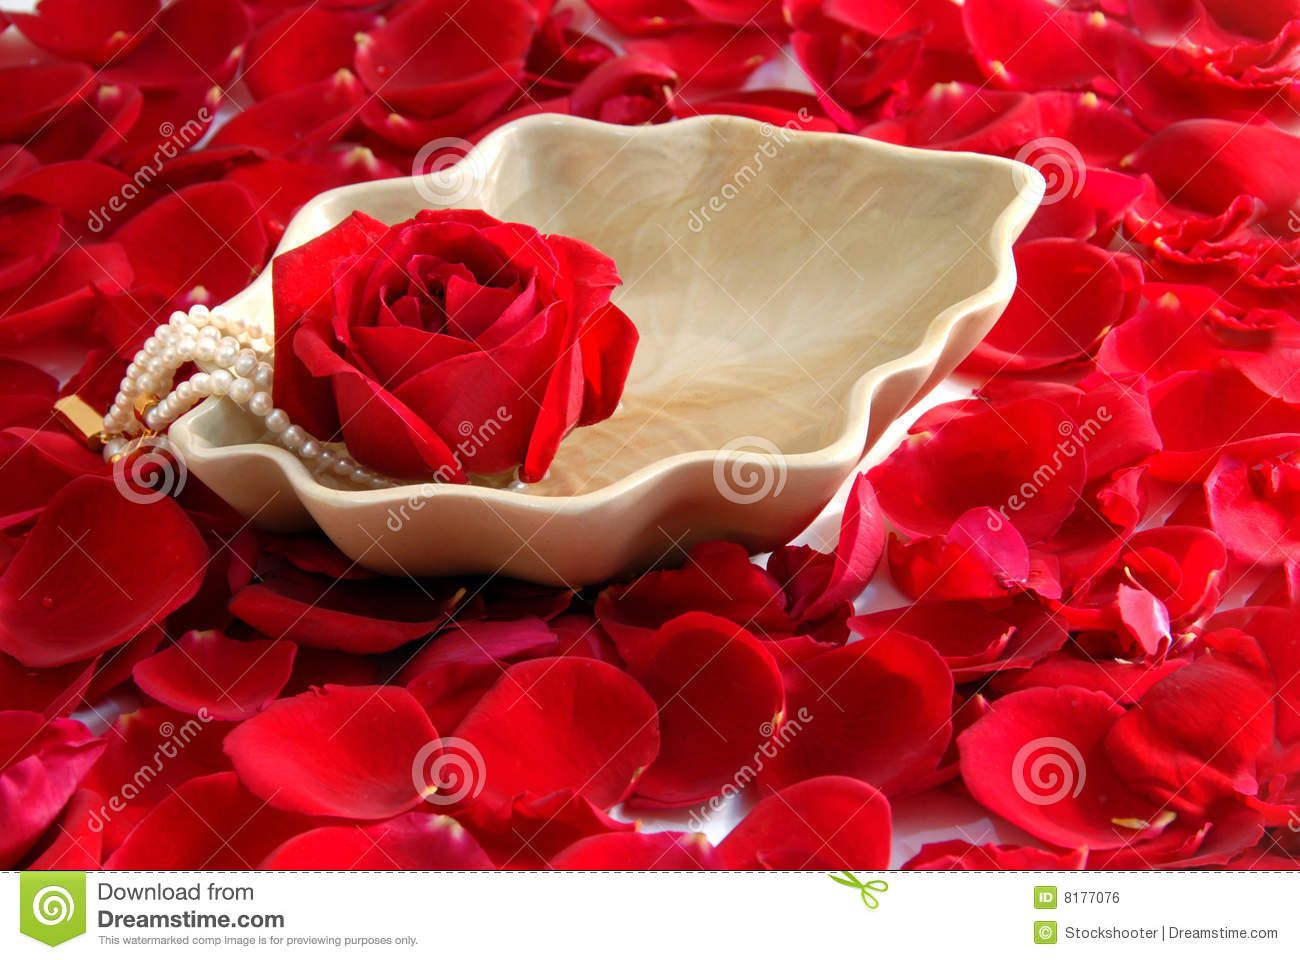 Pin by deeno moss on blazing red red rose flower red - Red rose petals wallpaper ...